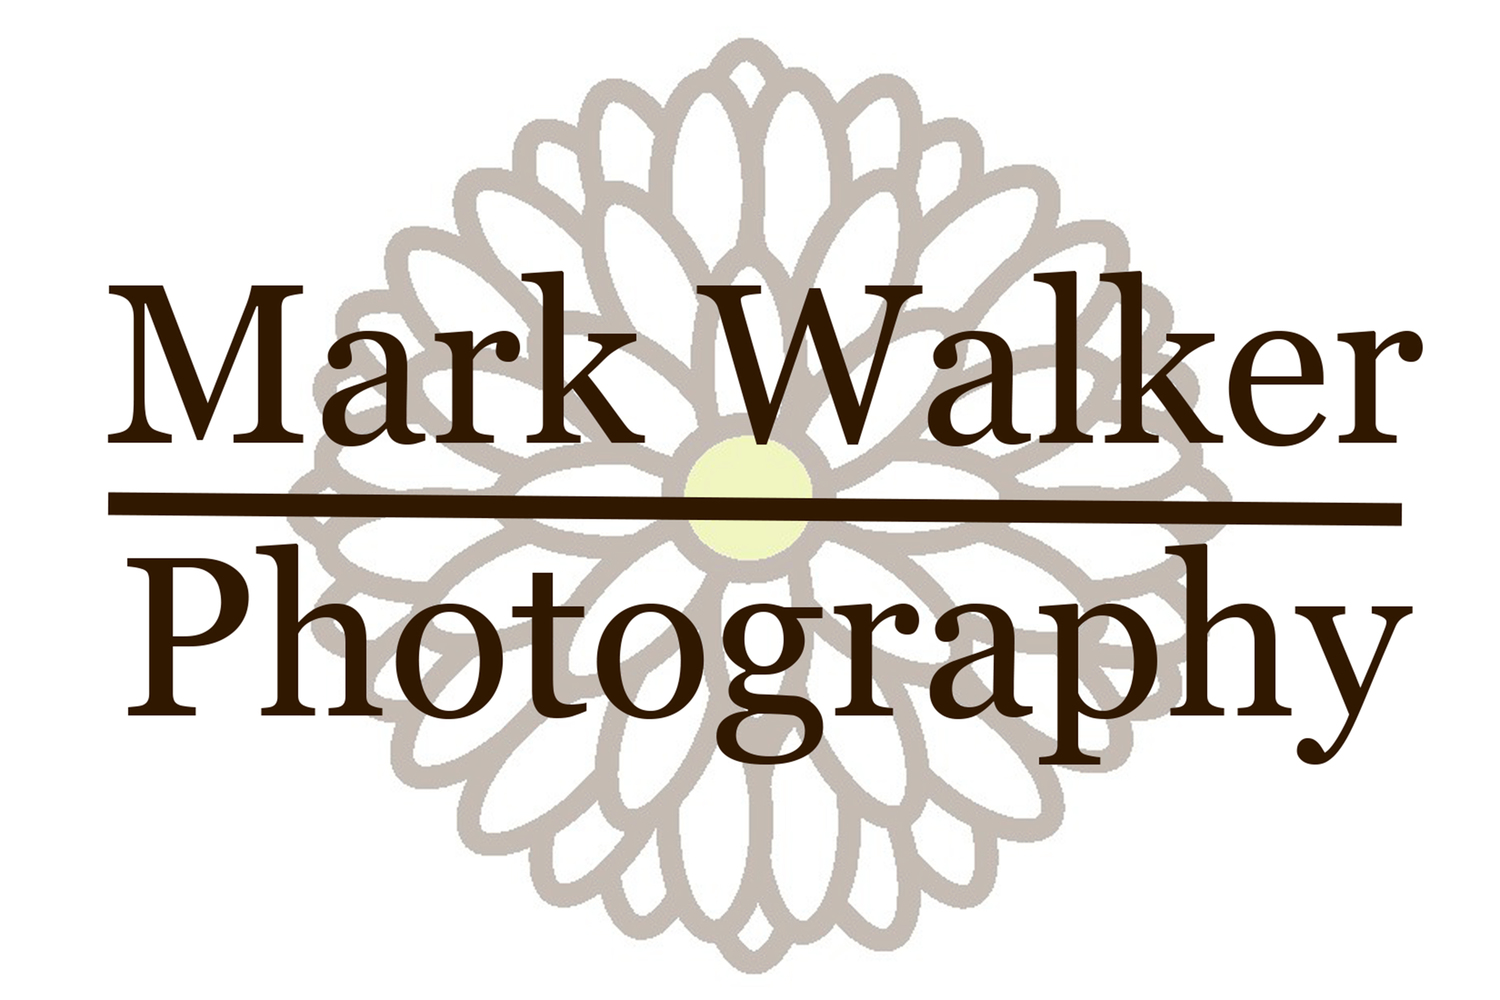 Mark Walker Photography